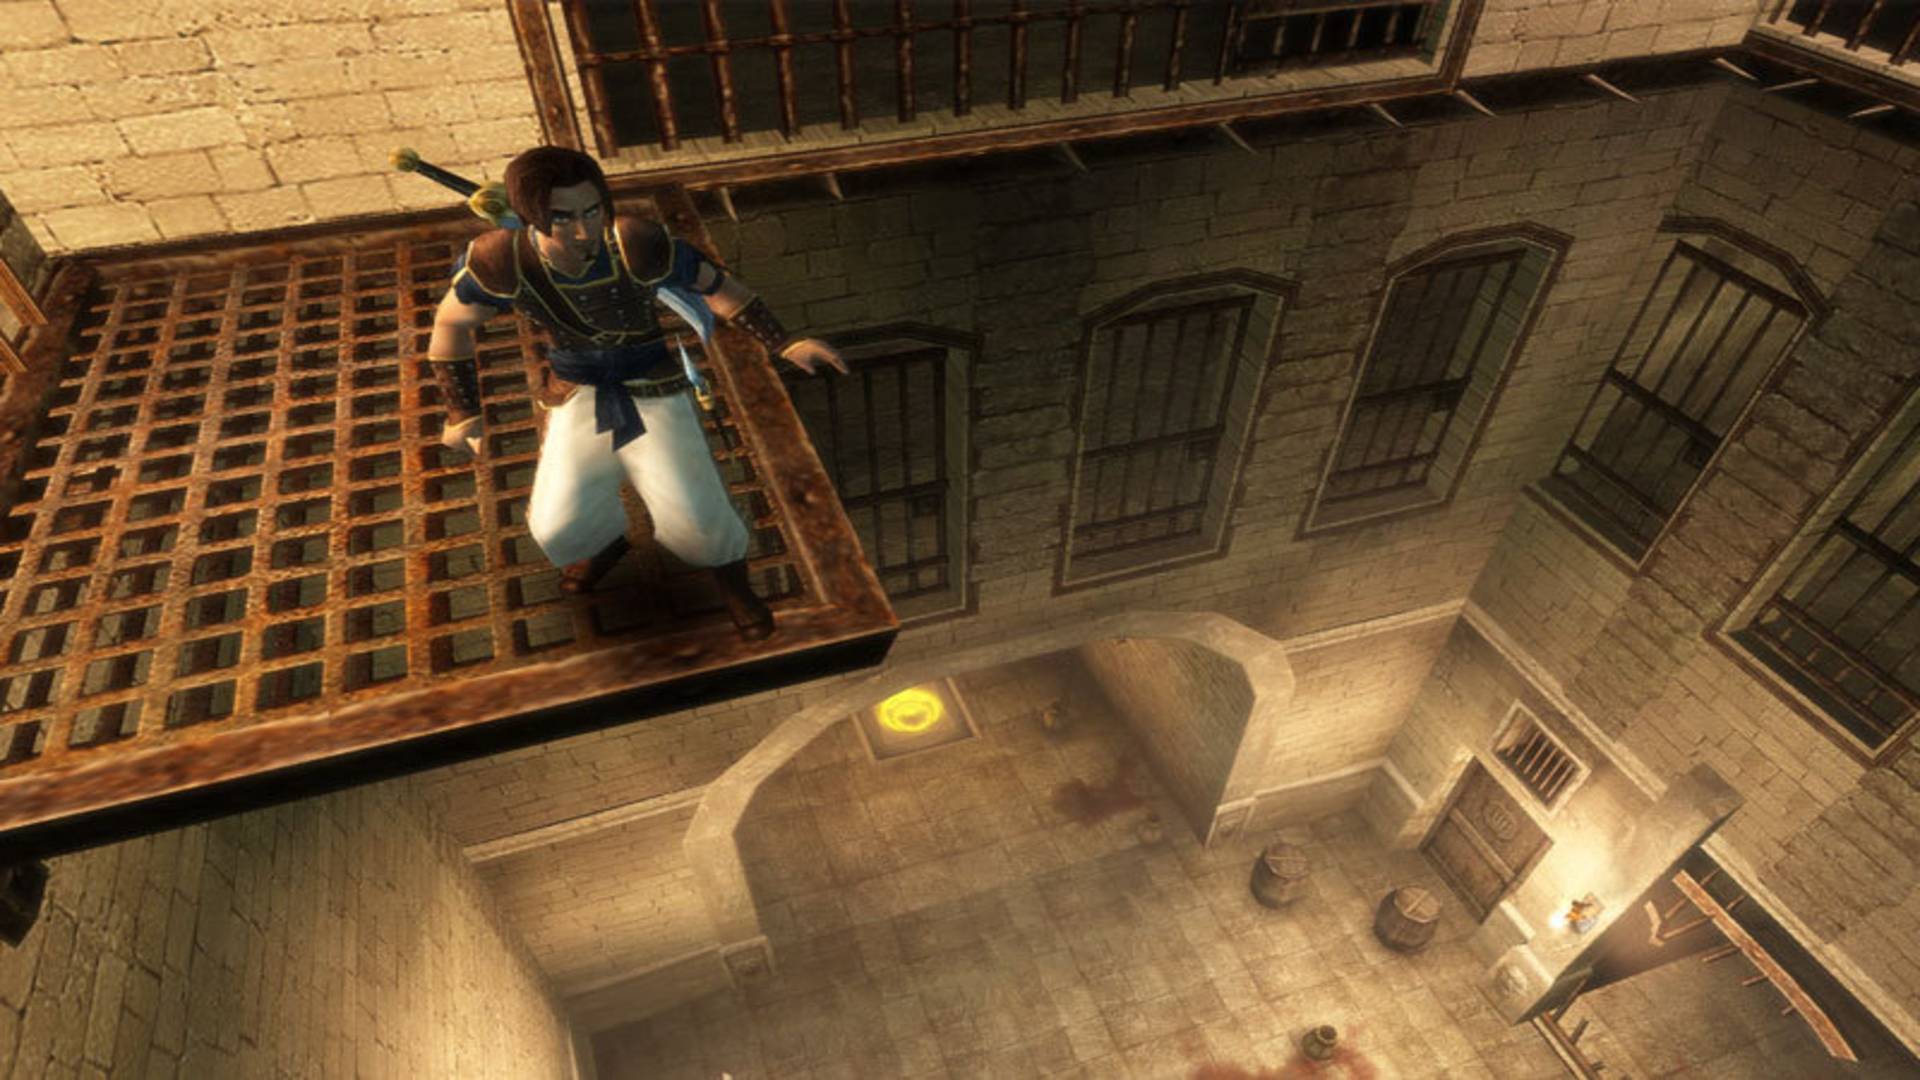 Prince of Persia PC for Windows 10 - Free download and ...